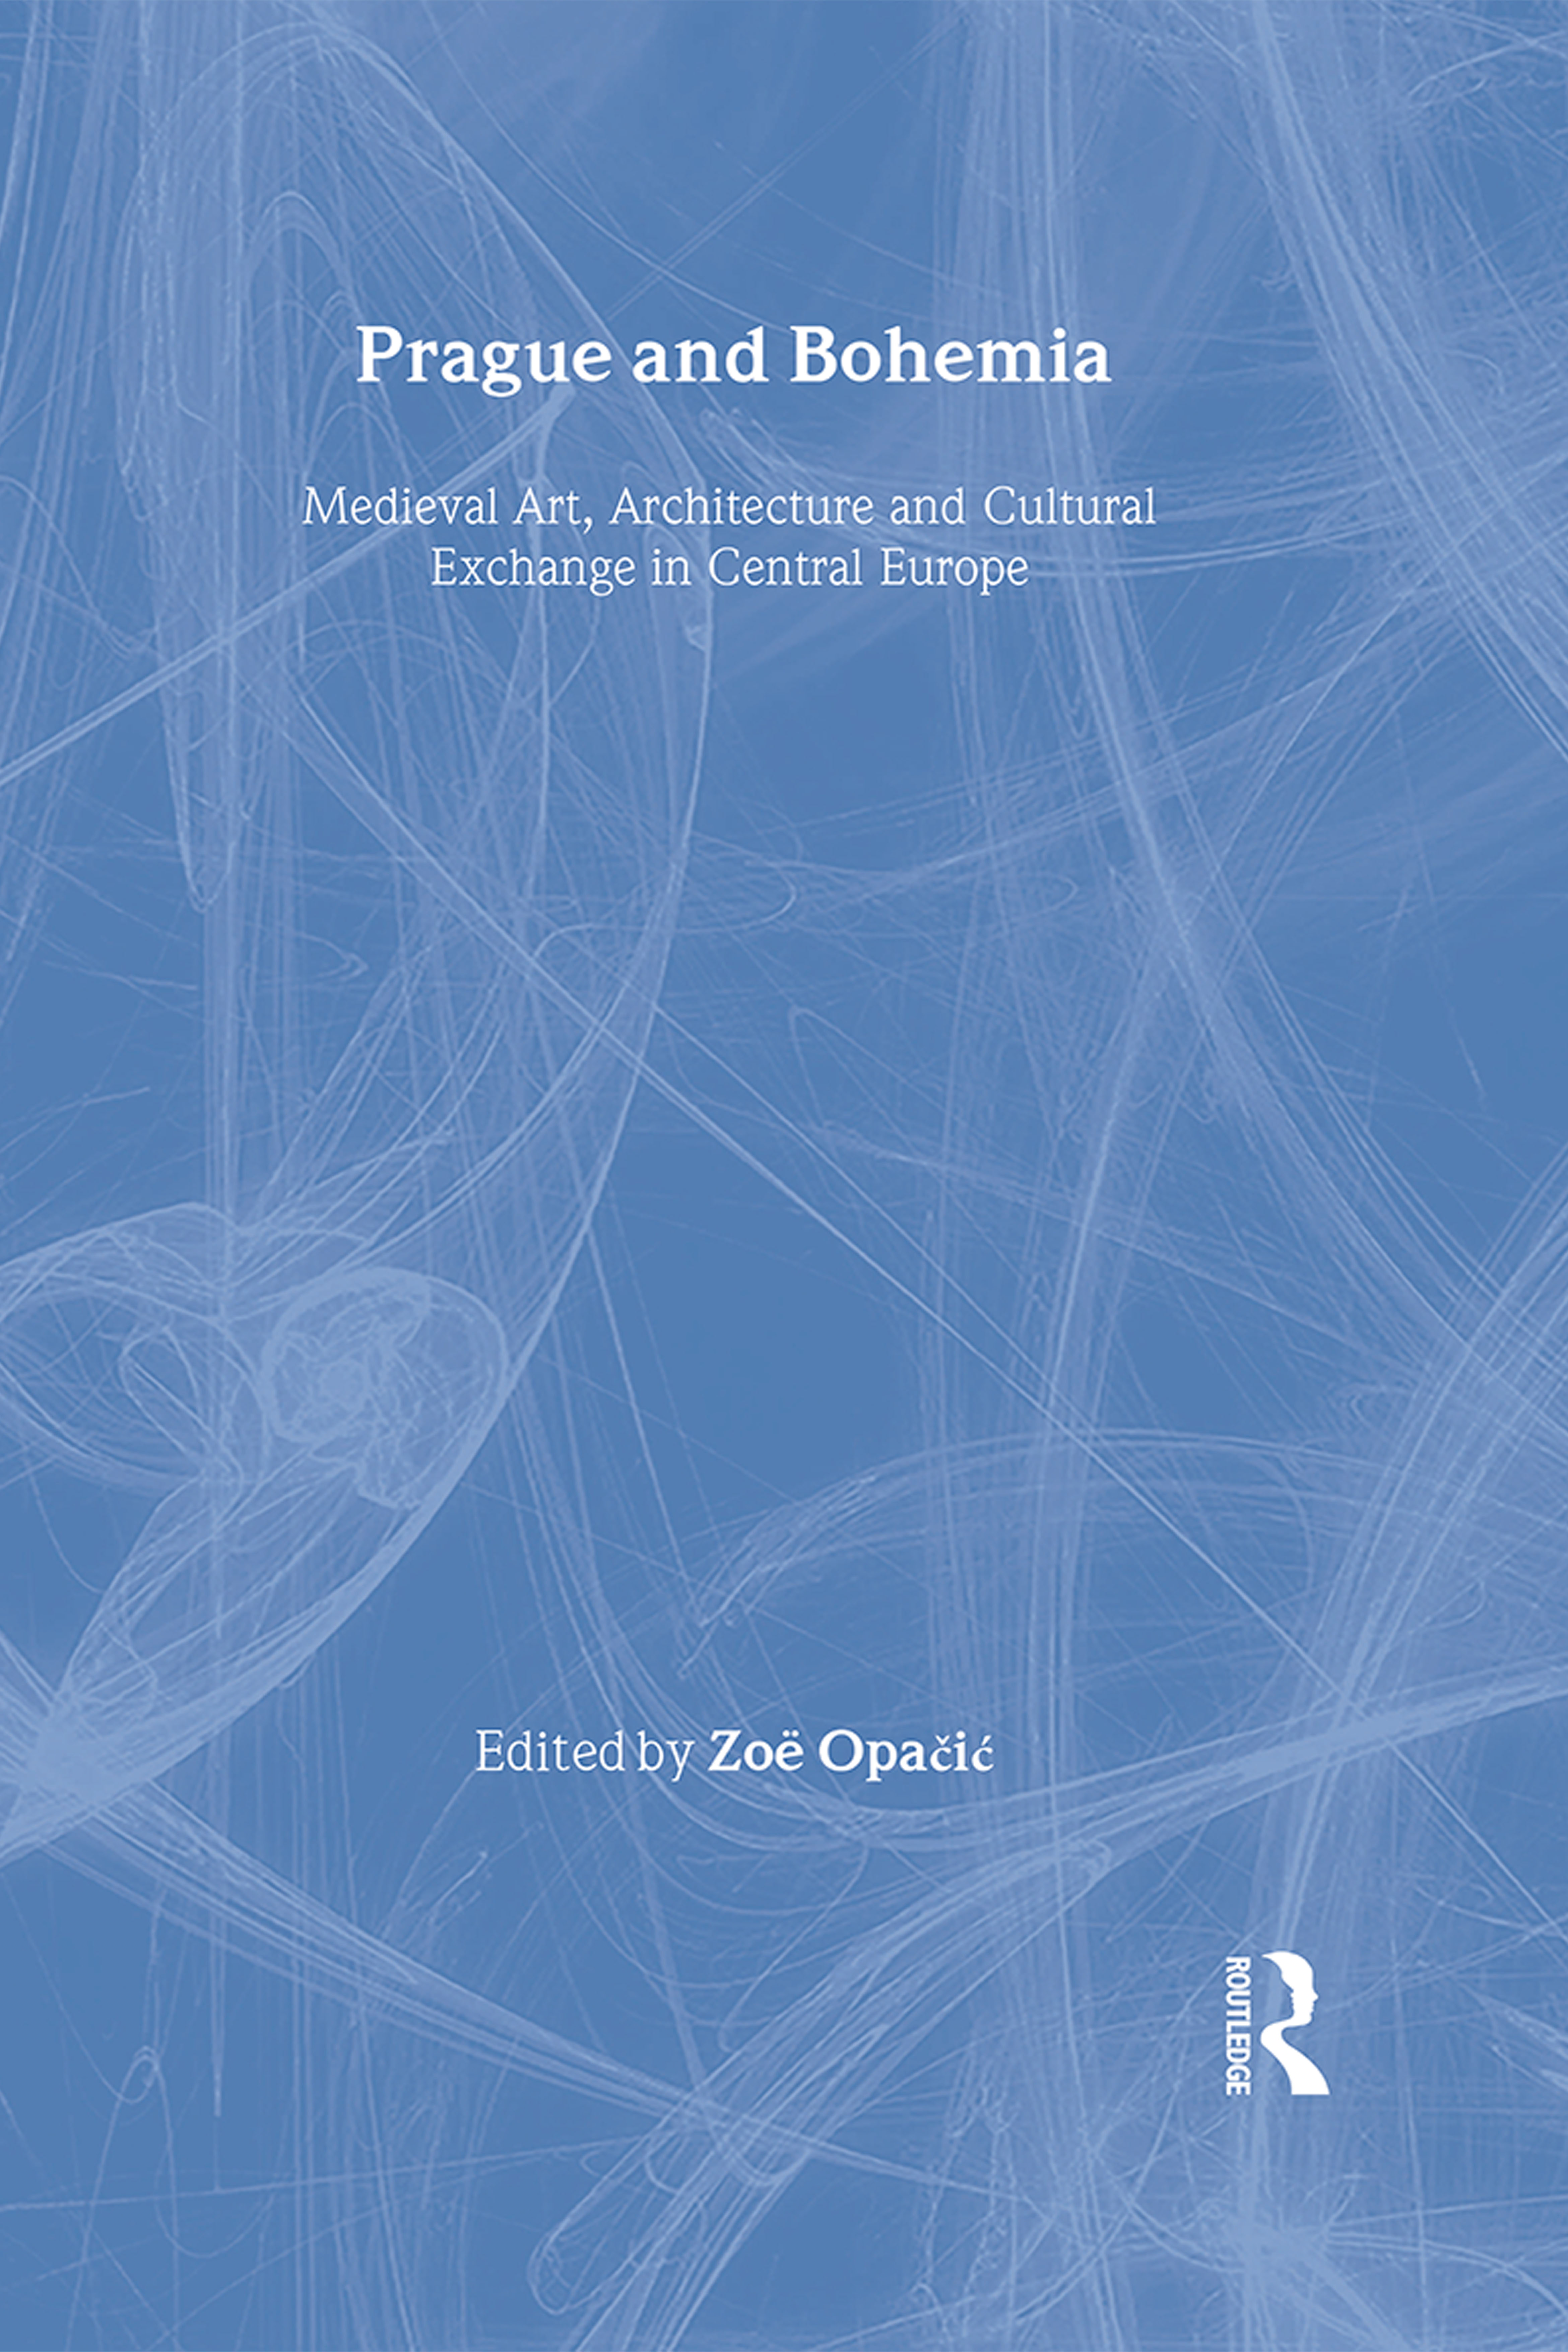 Prague and Bohemia: Medieval Art, Architecture and Cultural Exchange in Central Europe: Volume 32: Medieval Art, Architecture and Cultural Exchange in Central Europe book cover